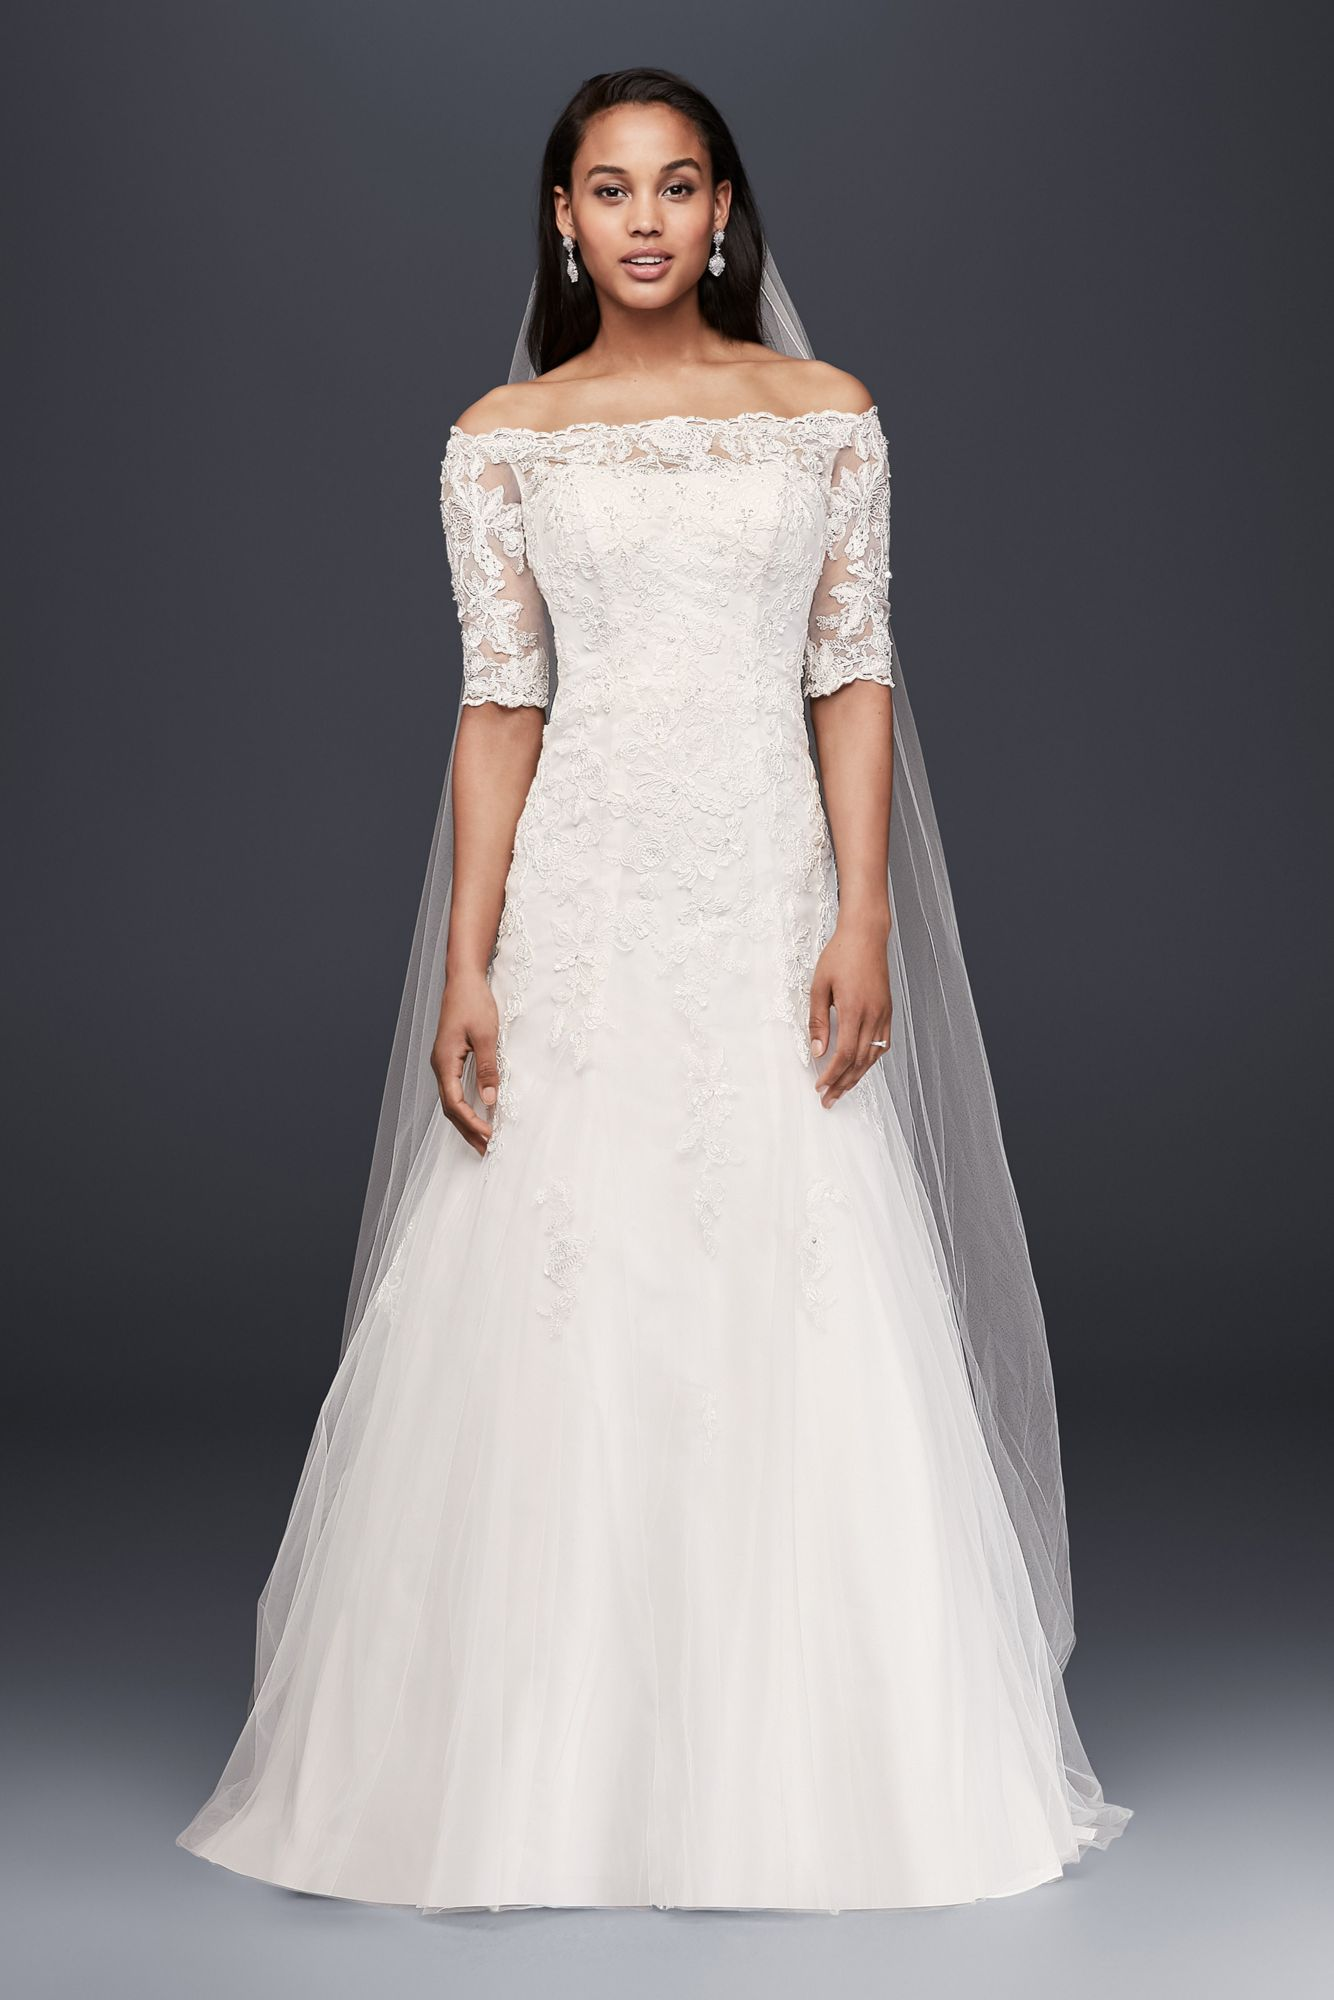 Extra length off the shoulder xlwg style lace wedding dress